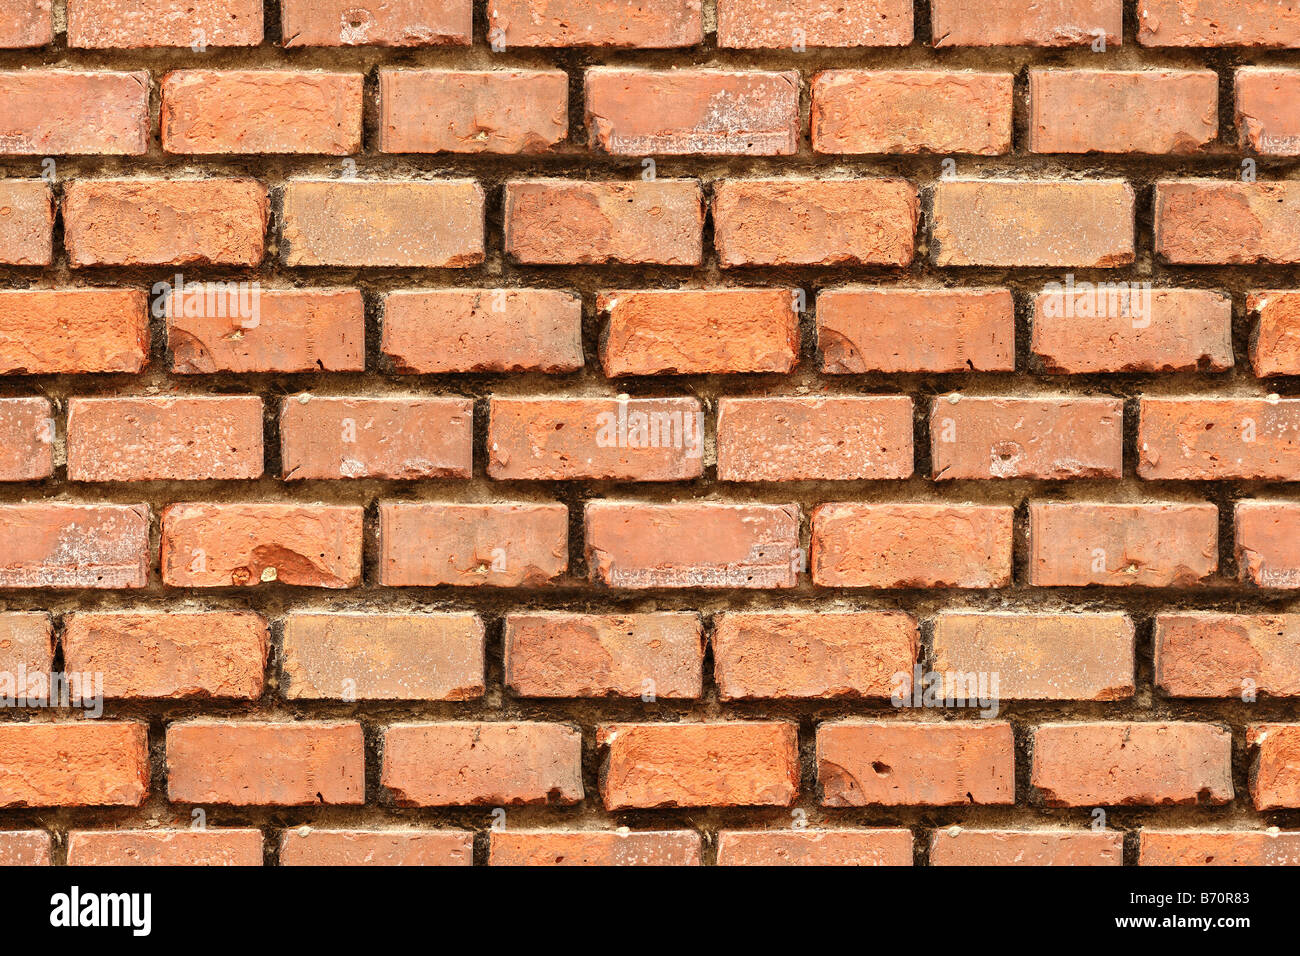 Seamlessly repeat old brick wall (repeatable both horizontally and vertically with no visible edges) - Stock Image